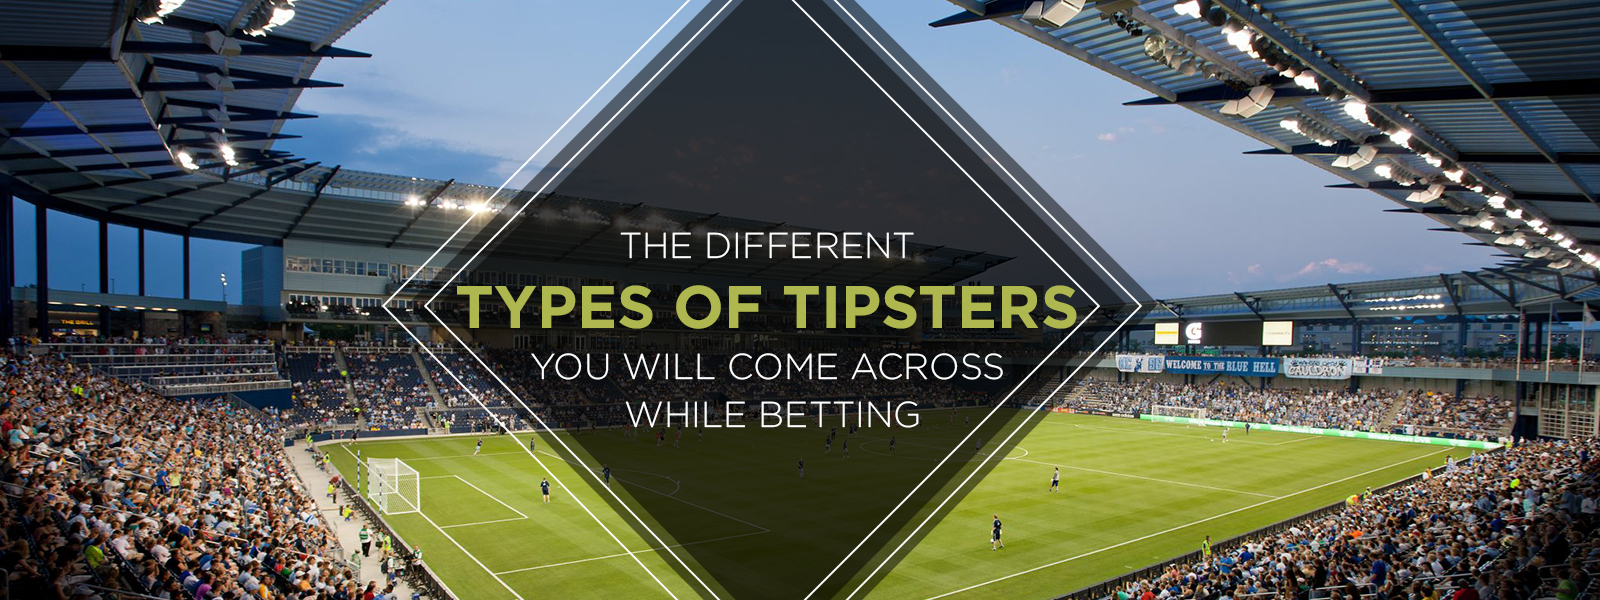 The different types of tipsters you will come across while betting